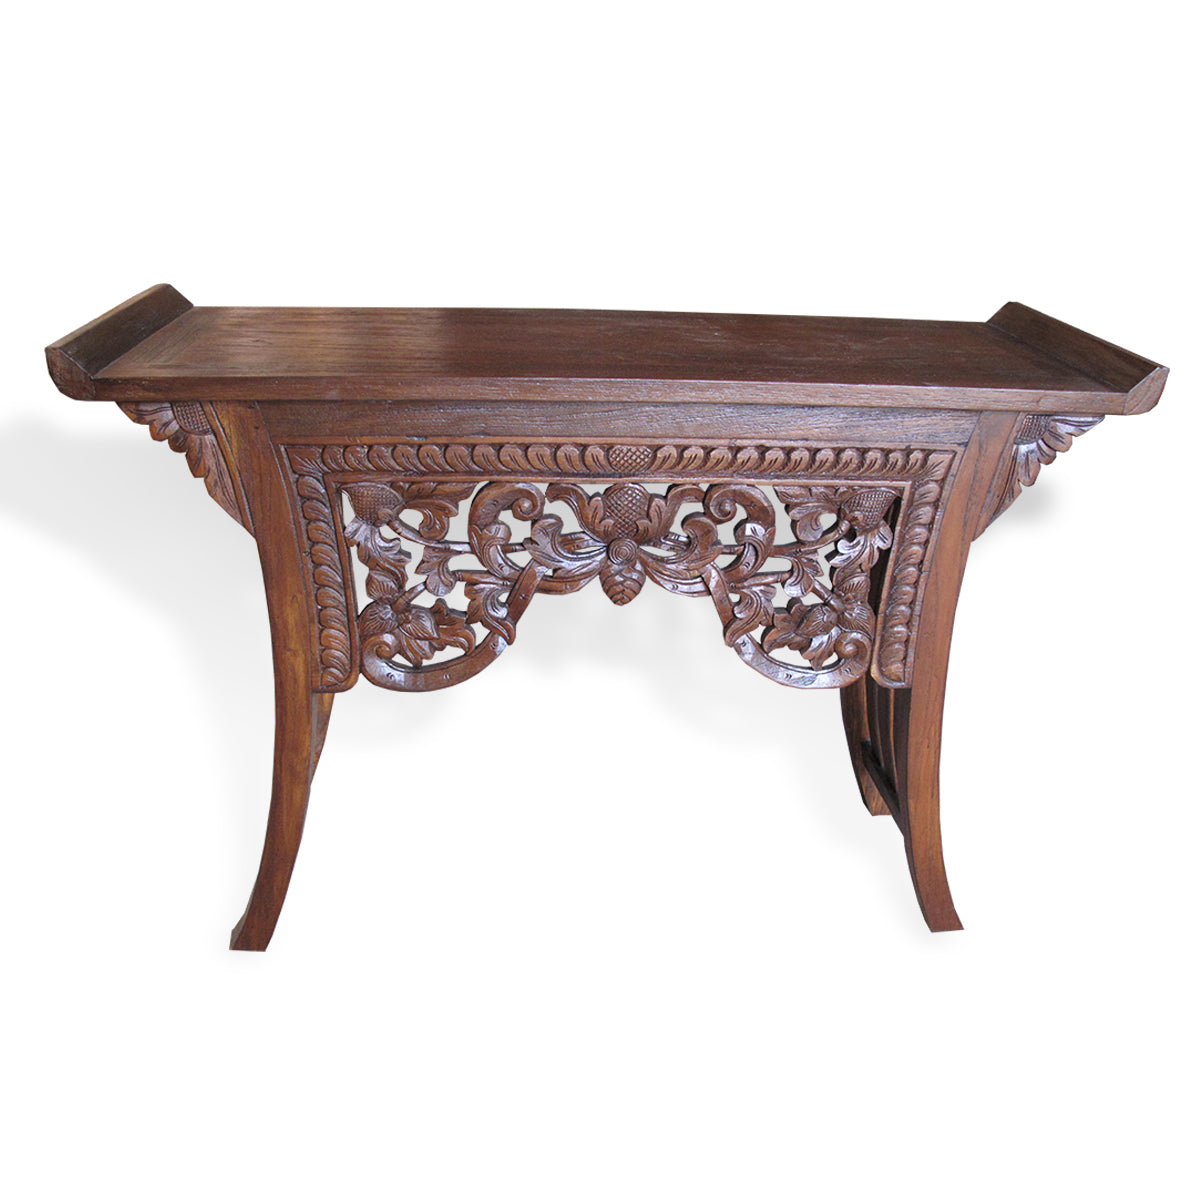 LAC045-1 CARVED RECYCLED TEAK CONSOLE